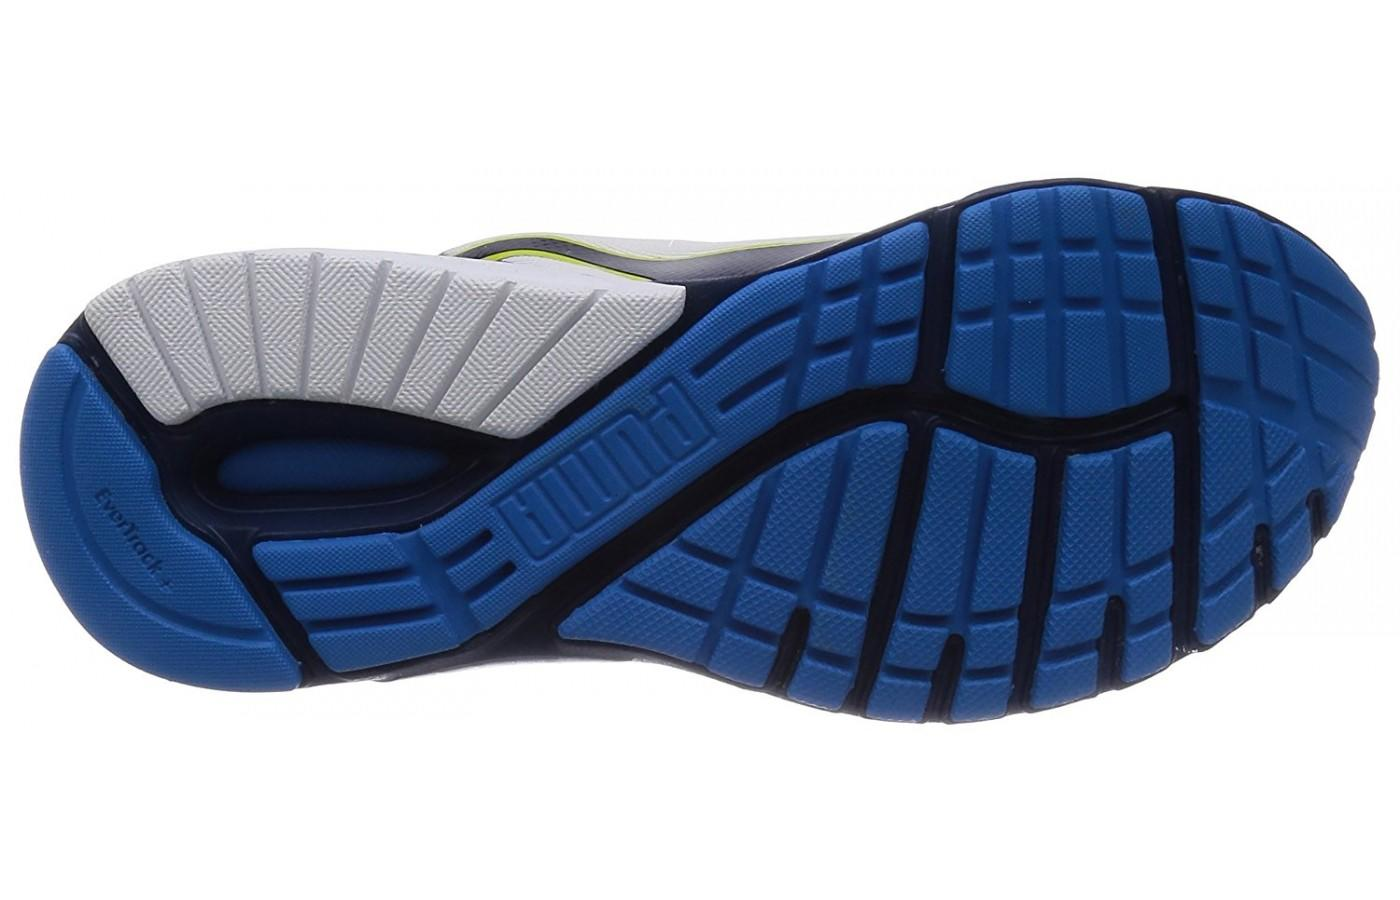 The flex grooves of the underfoot add traction and durability.